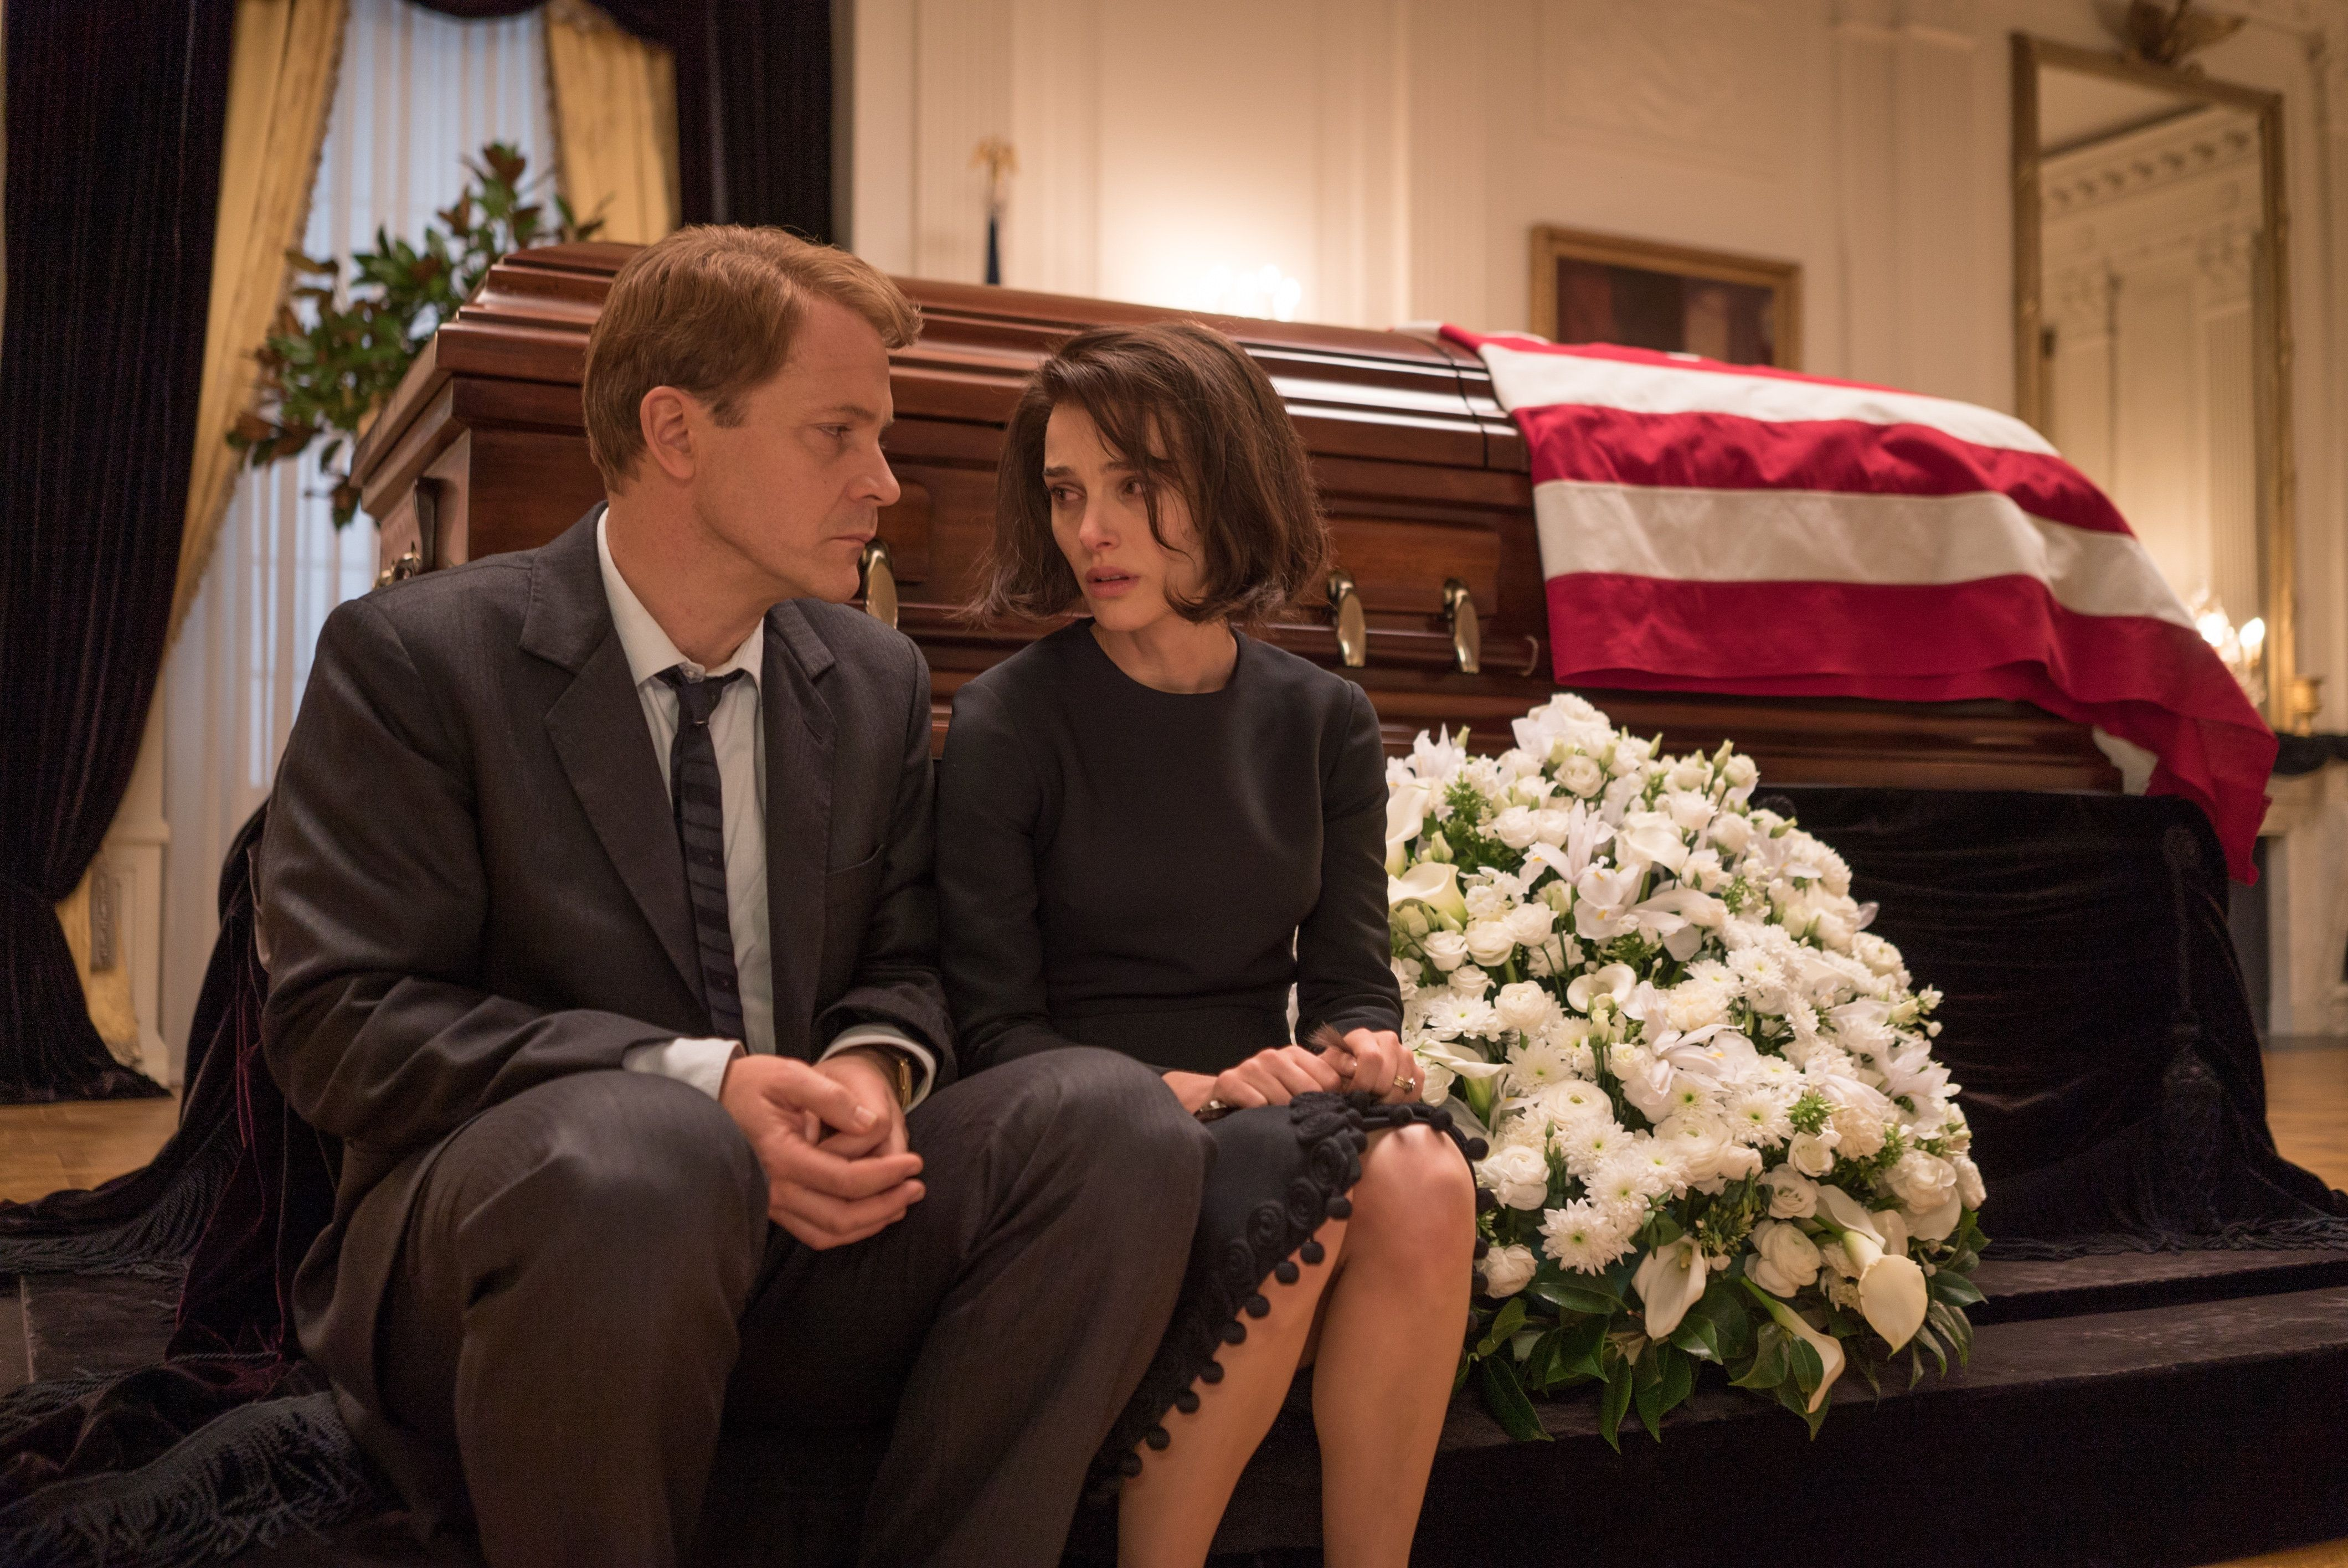 """Peter Sarsgaard as """"Bobby Kennedy"""" and Natalie Portman as """"Jackie Kennedy"""" in JACKIE. Photo by Bruno Calvo. © 2016 Twentieth Century Fox Film Corporation All Rights Reserved"""